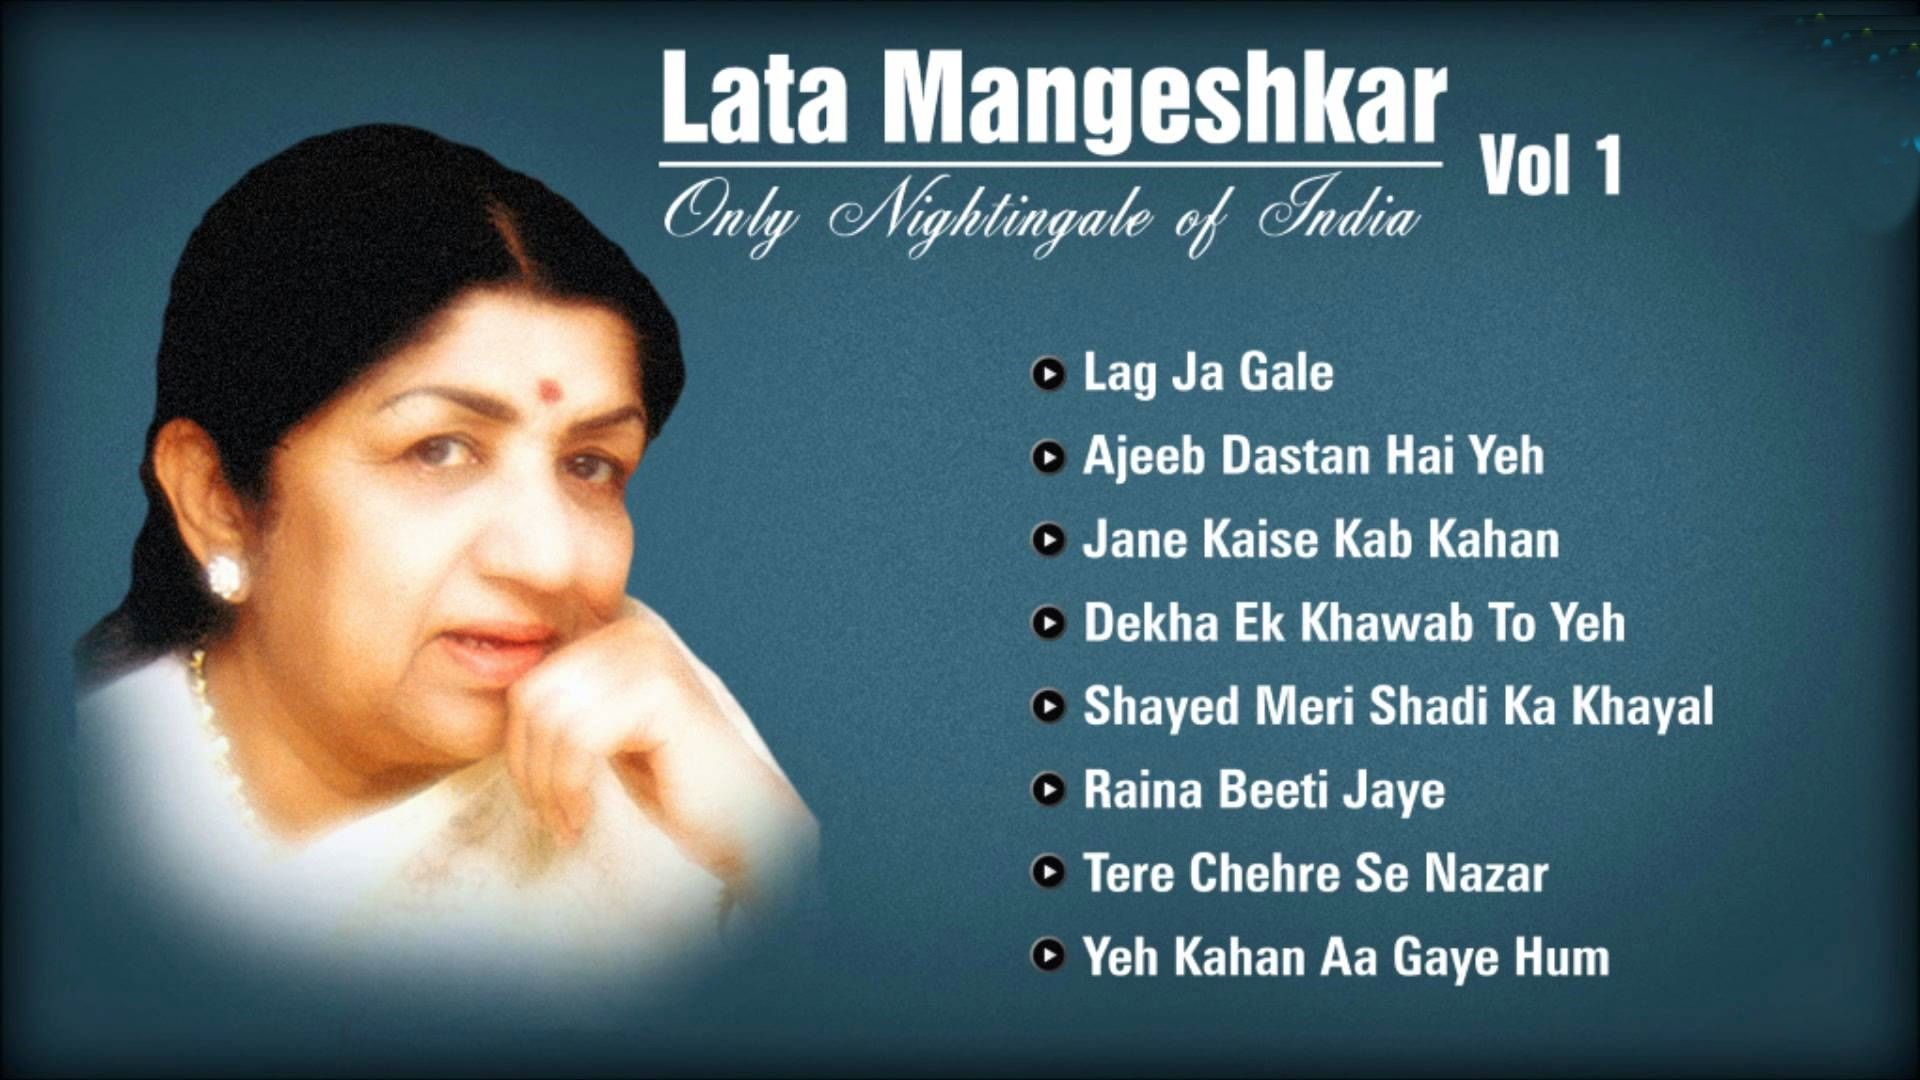 Lata Mangeshkar Hit Songs Mobile App Get It On Your Mobile Device By Just 1 Click On Link Lata Mangeshkar Songs Lata Mangeshkar Hit Songs